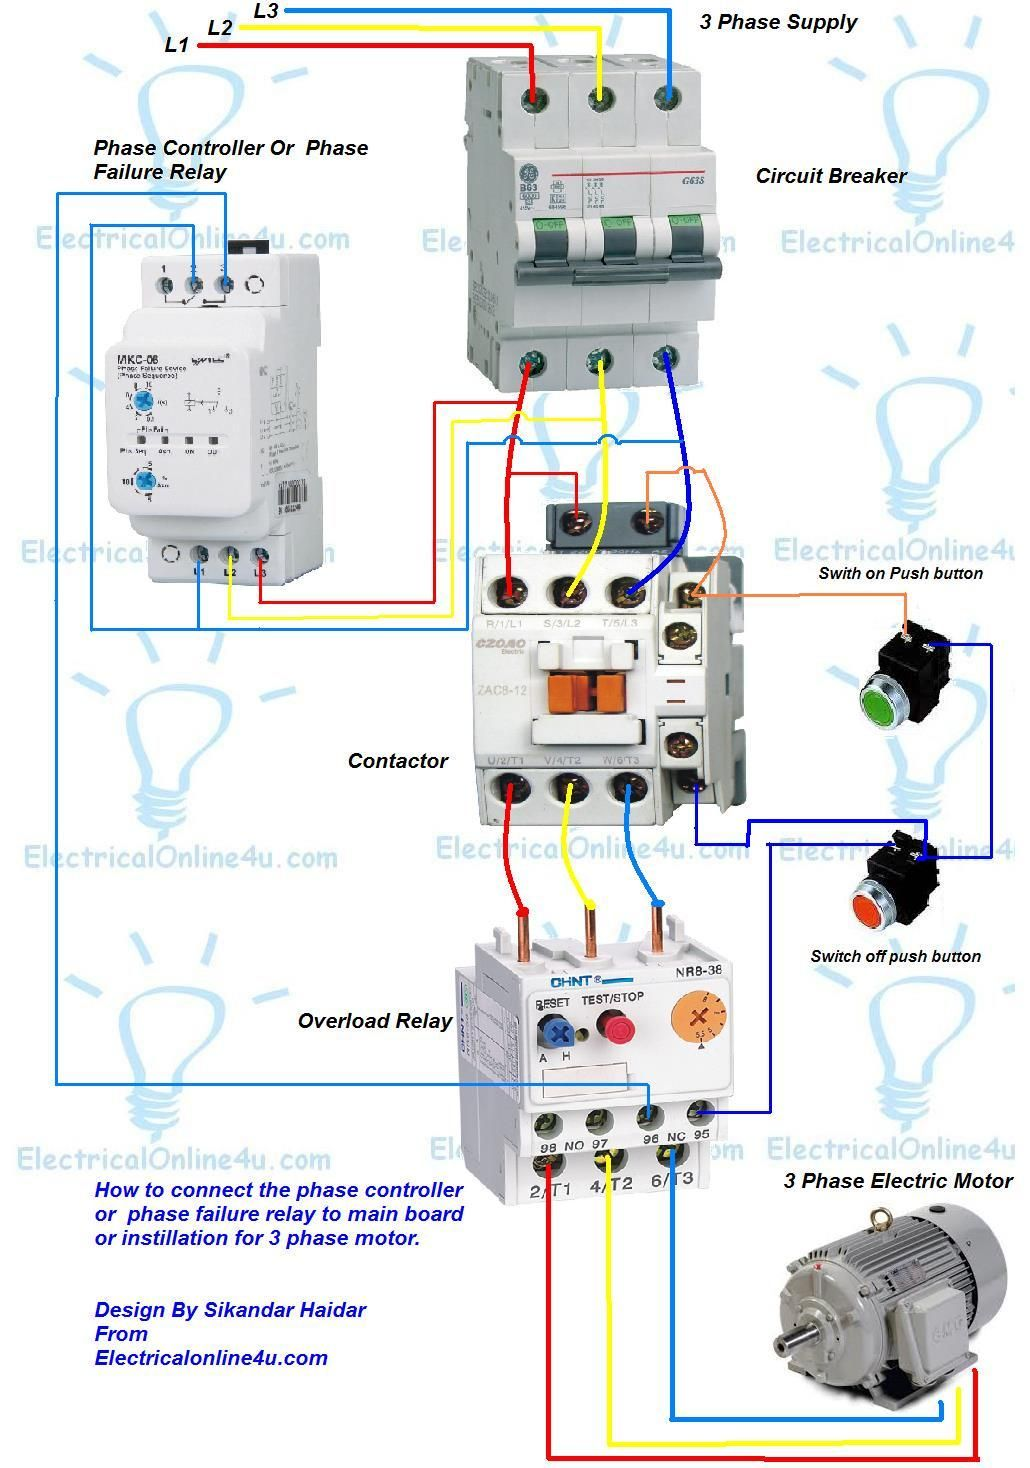 phase controller wiring phase failure relay diagram di on line rh pinterest  com 380v 3 phase motor wiring diagram